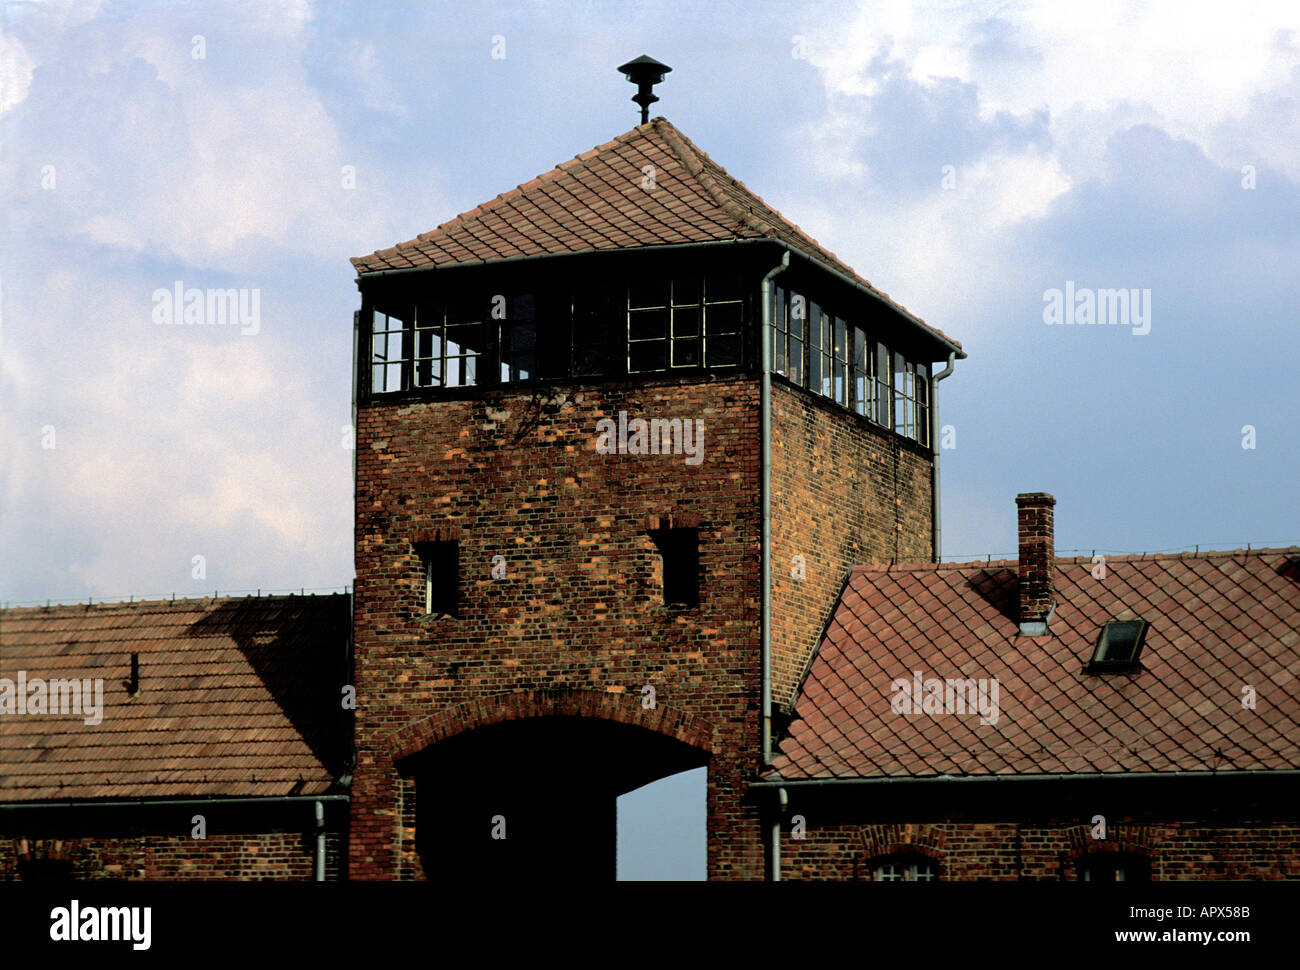 Hell s Gate name given to the entrance to Auschwitz Birkenau concentration camp now a state museum Oswiecim Poland Stock Photo